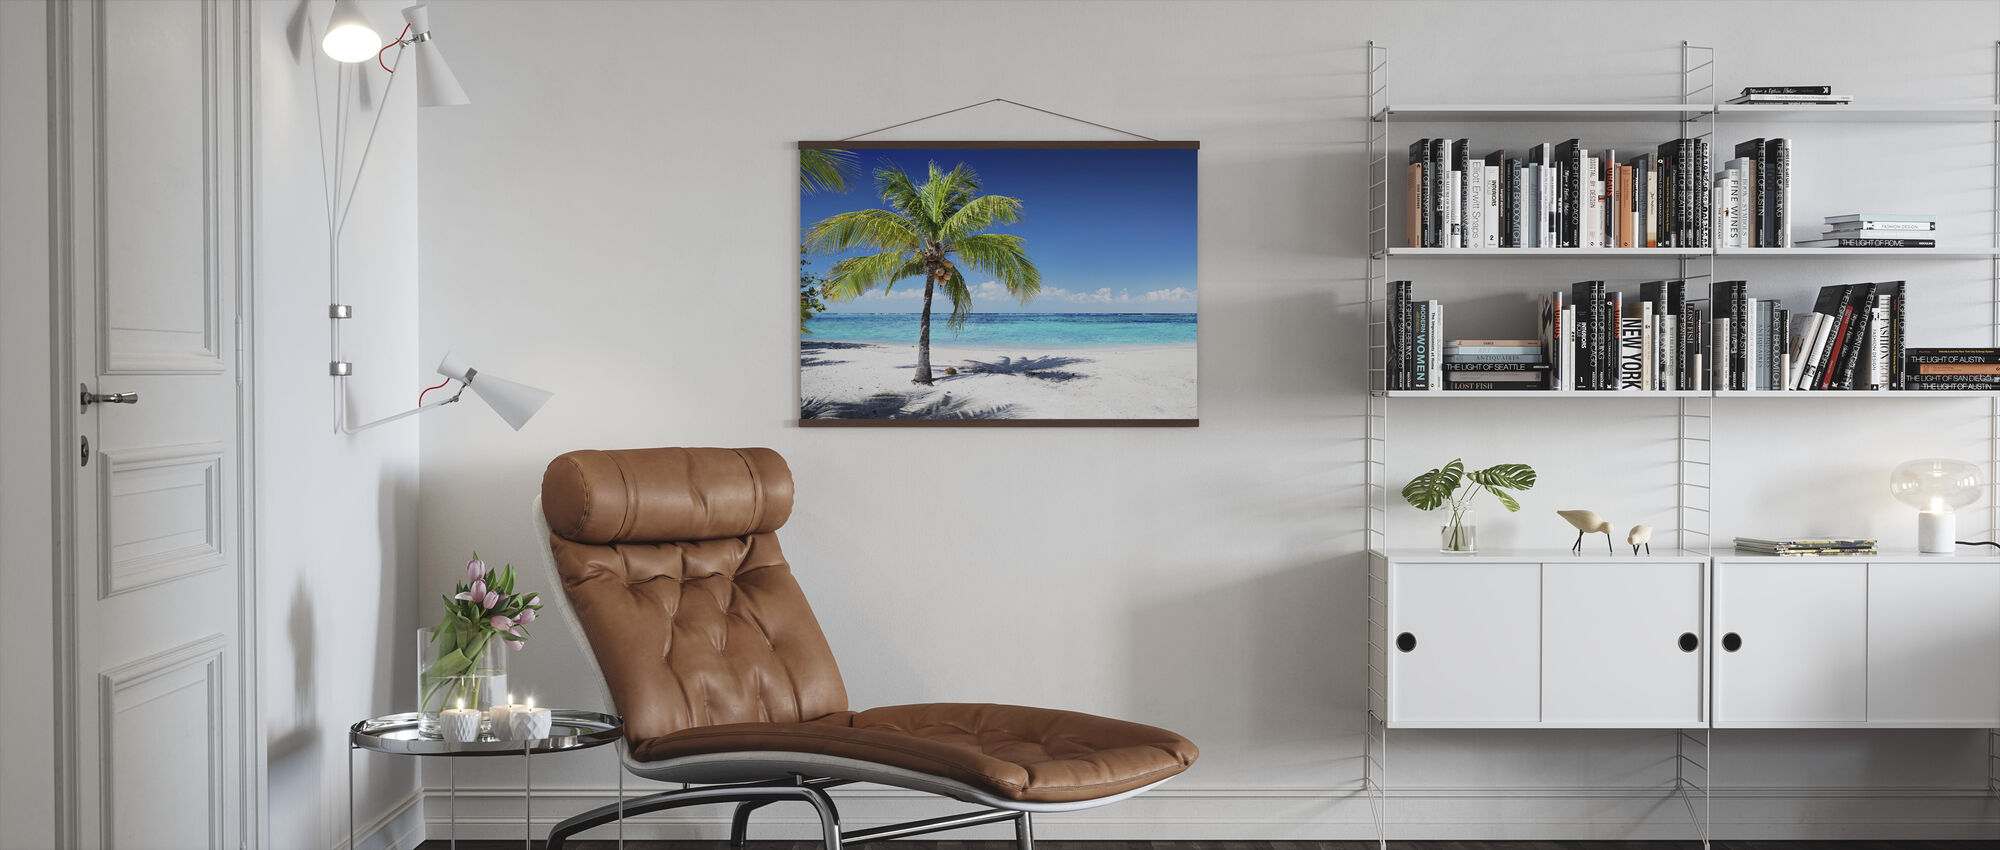 Coral Beach med Palm Tree - Poster - Vardagsrum